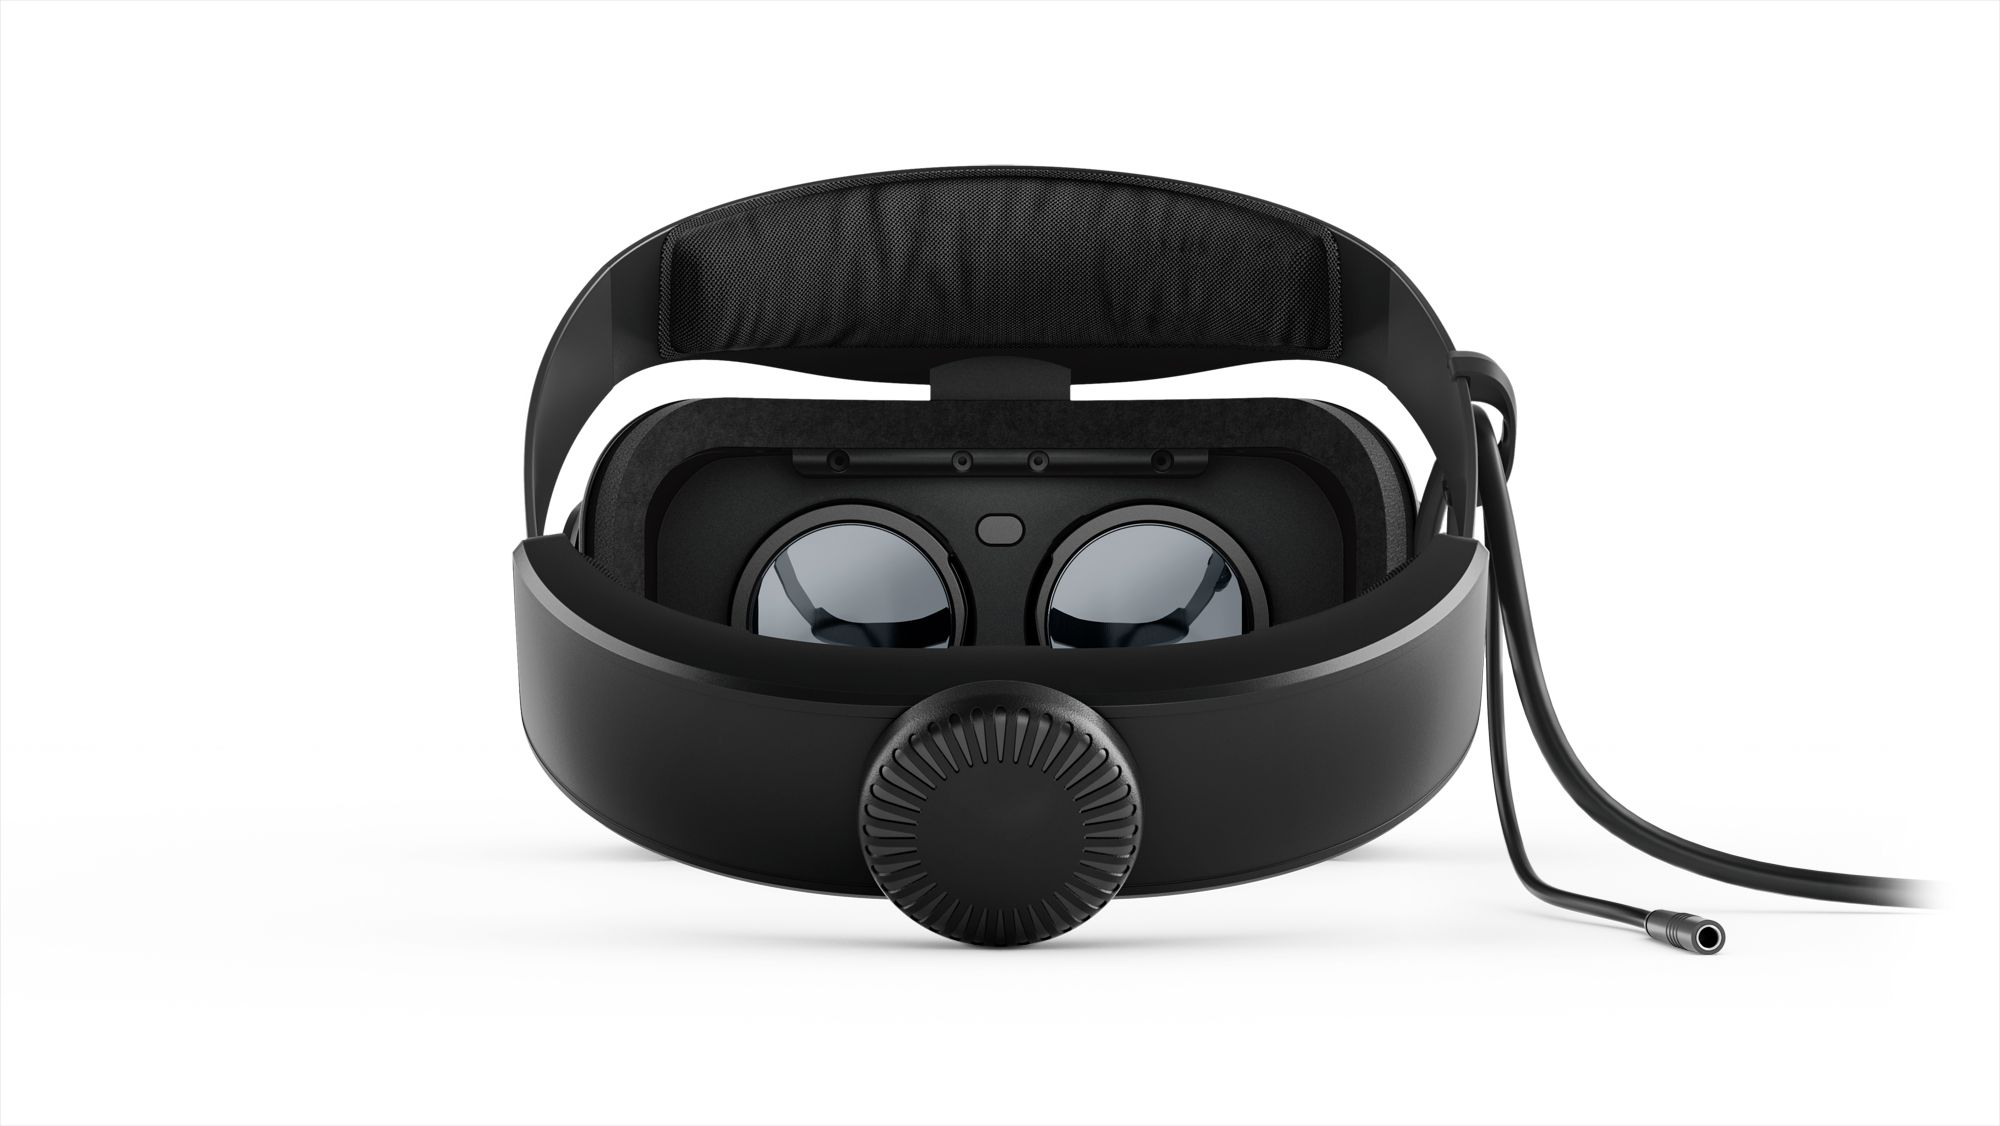 Lenovo Windows 10 Mixed Reality Headset Gets Official Name